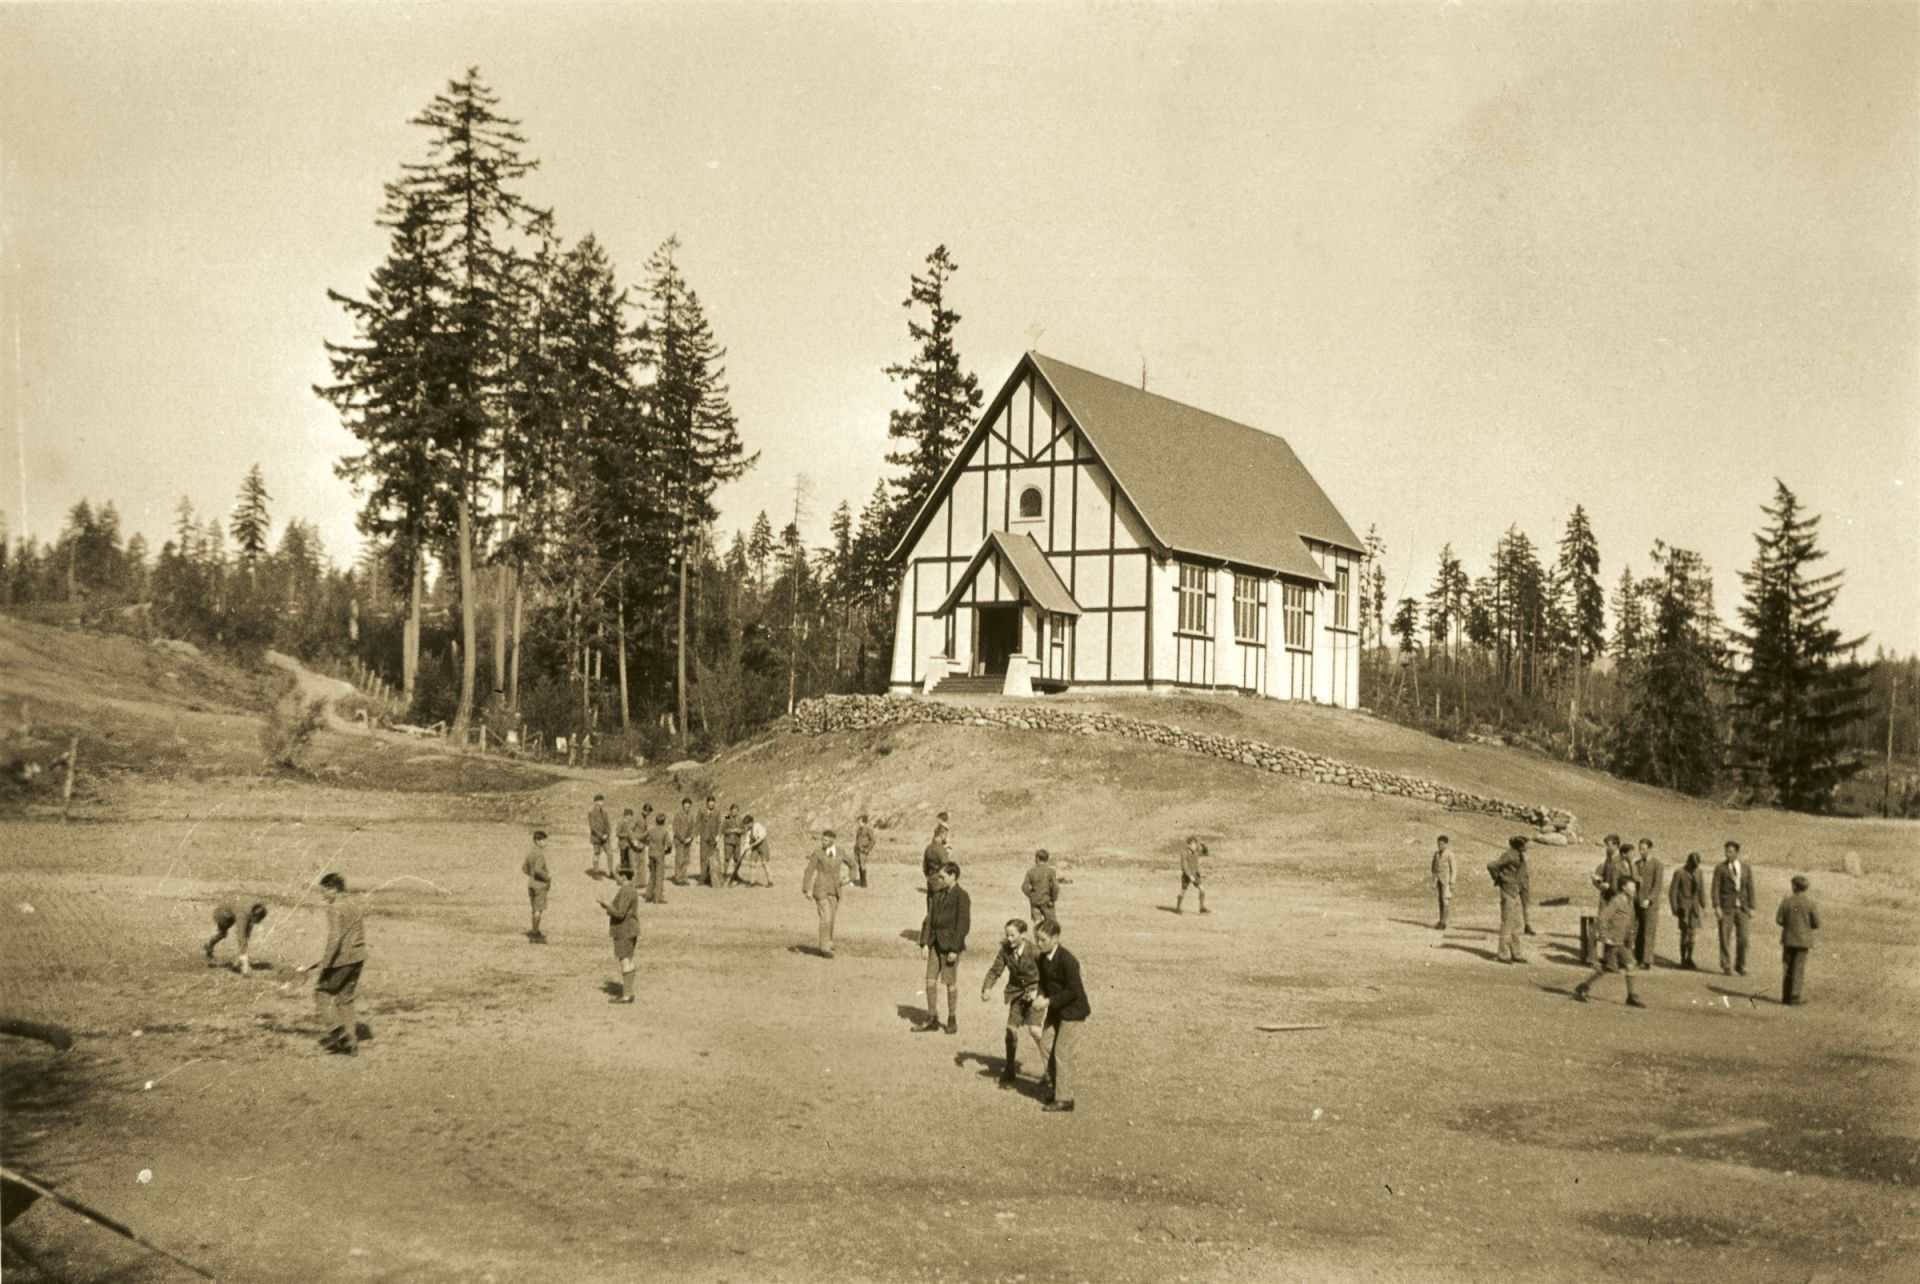 Boys playing outside the newly completed Chapel, 1928